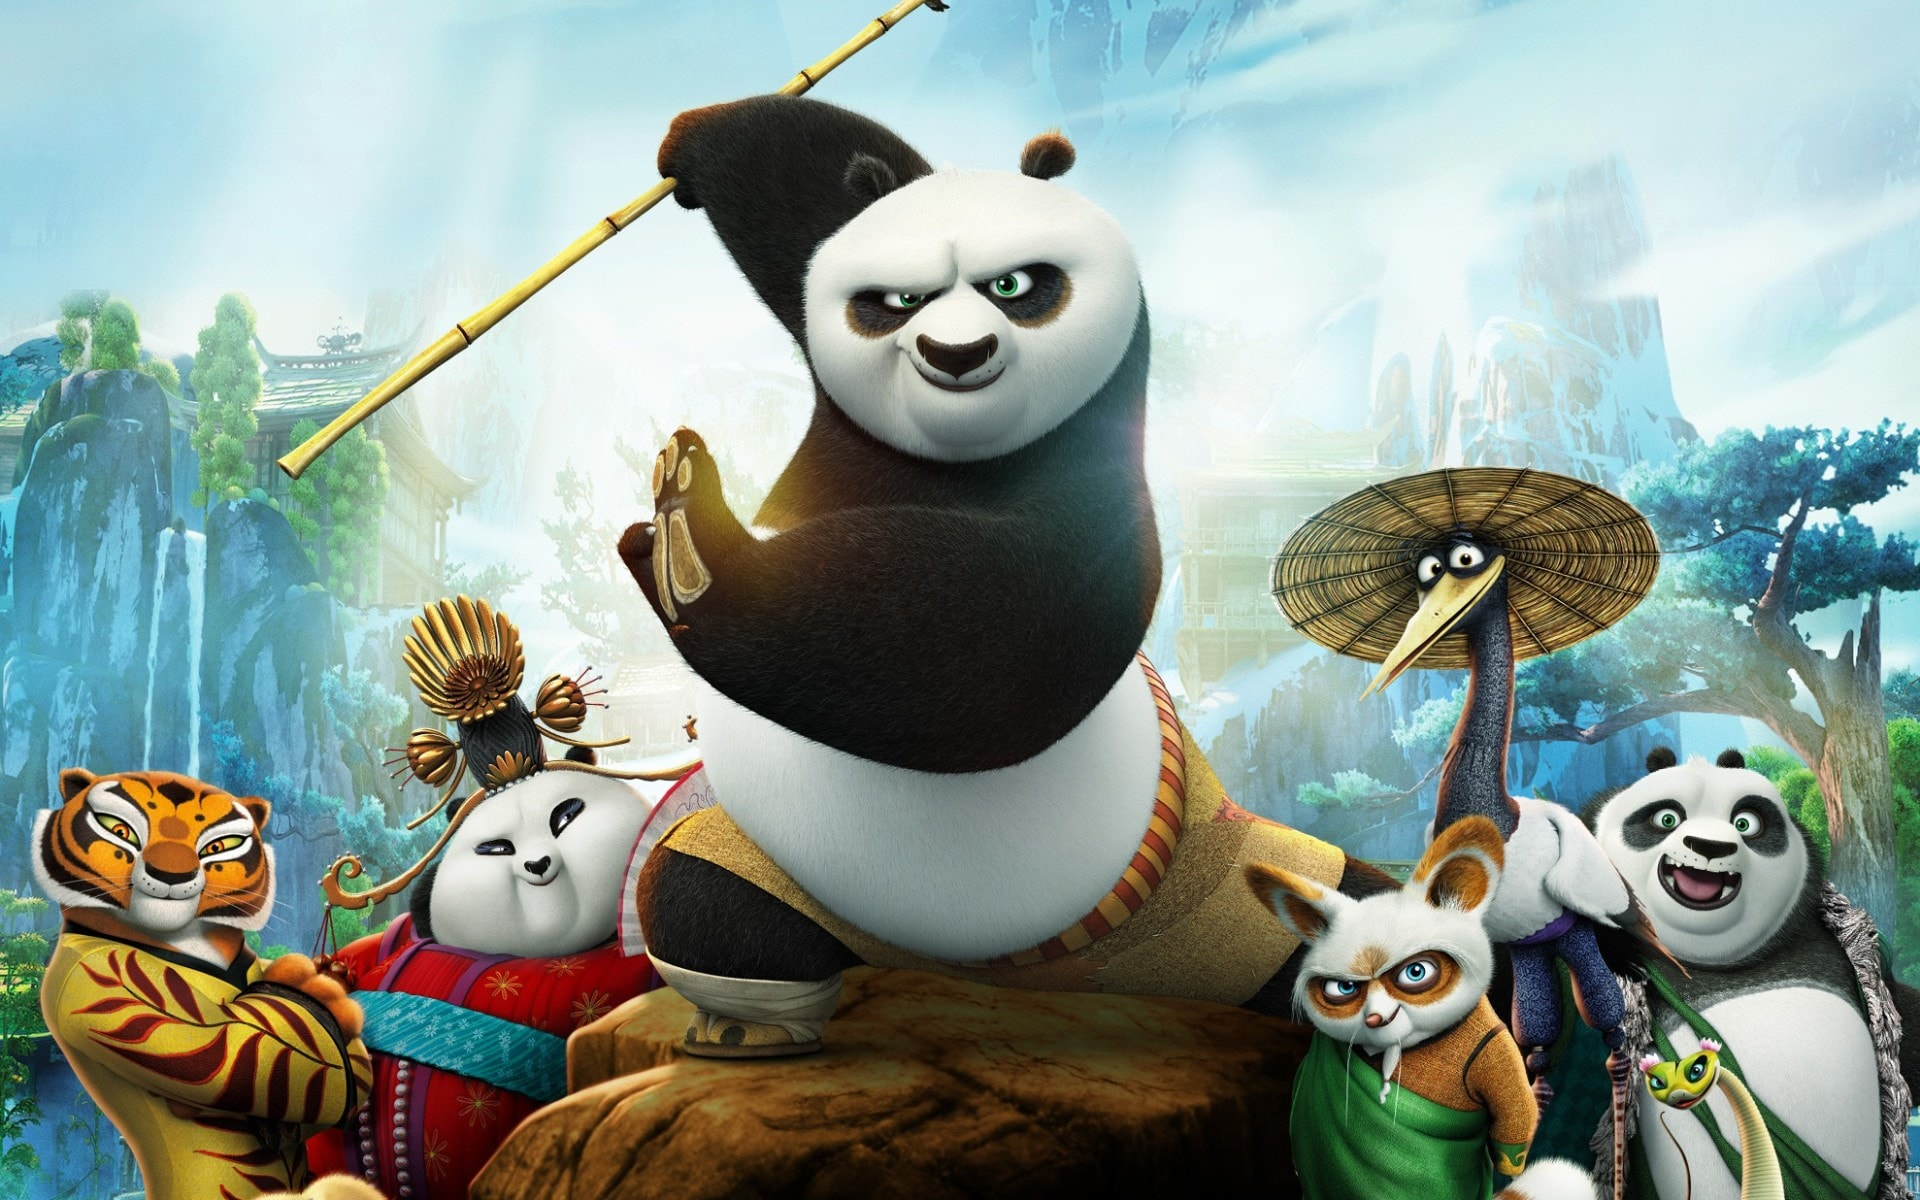 Kung fu panda iphone wallpaper - Kung Fu Panda 3 Pictures Kung Fu Panda 3 Hq Wallpapers